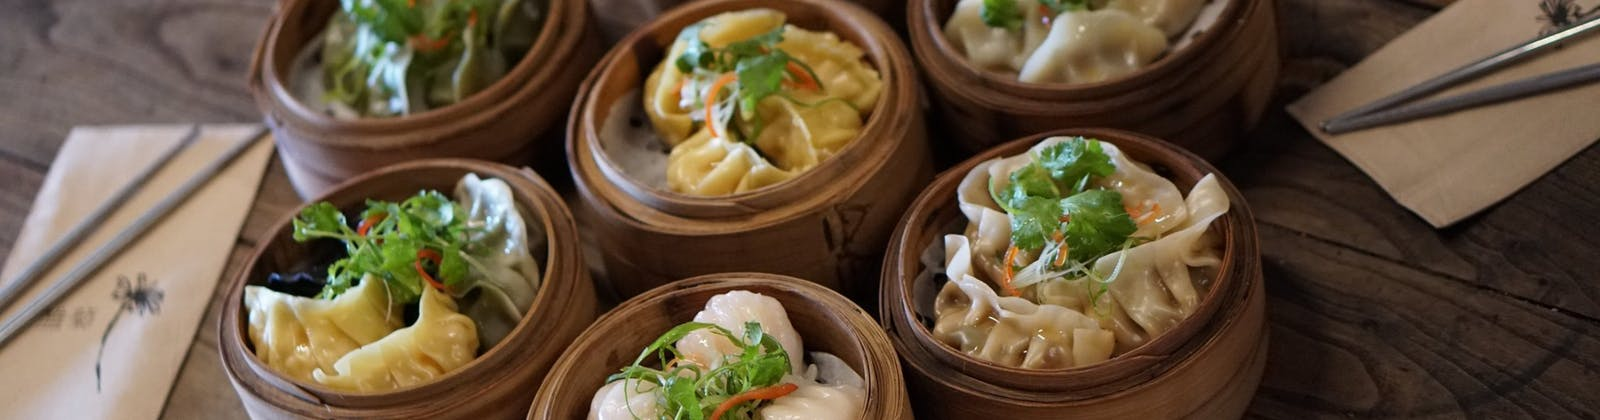 dumplings from daisy chang howick